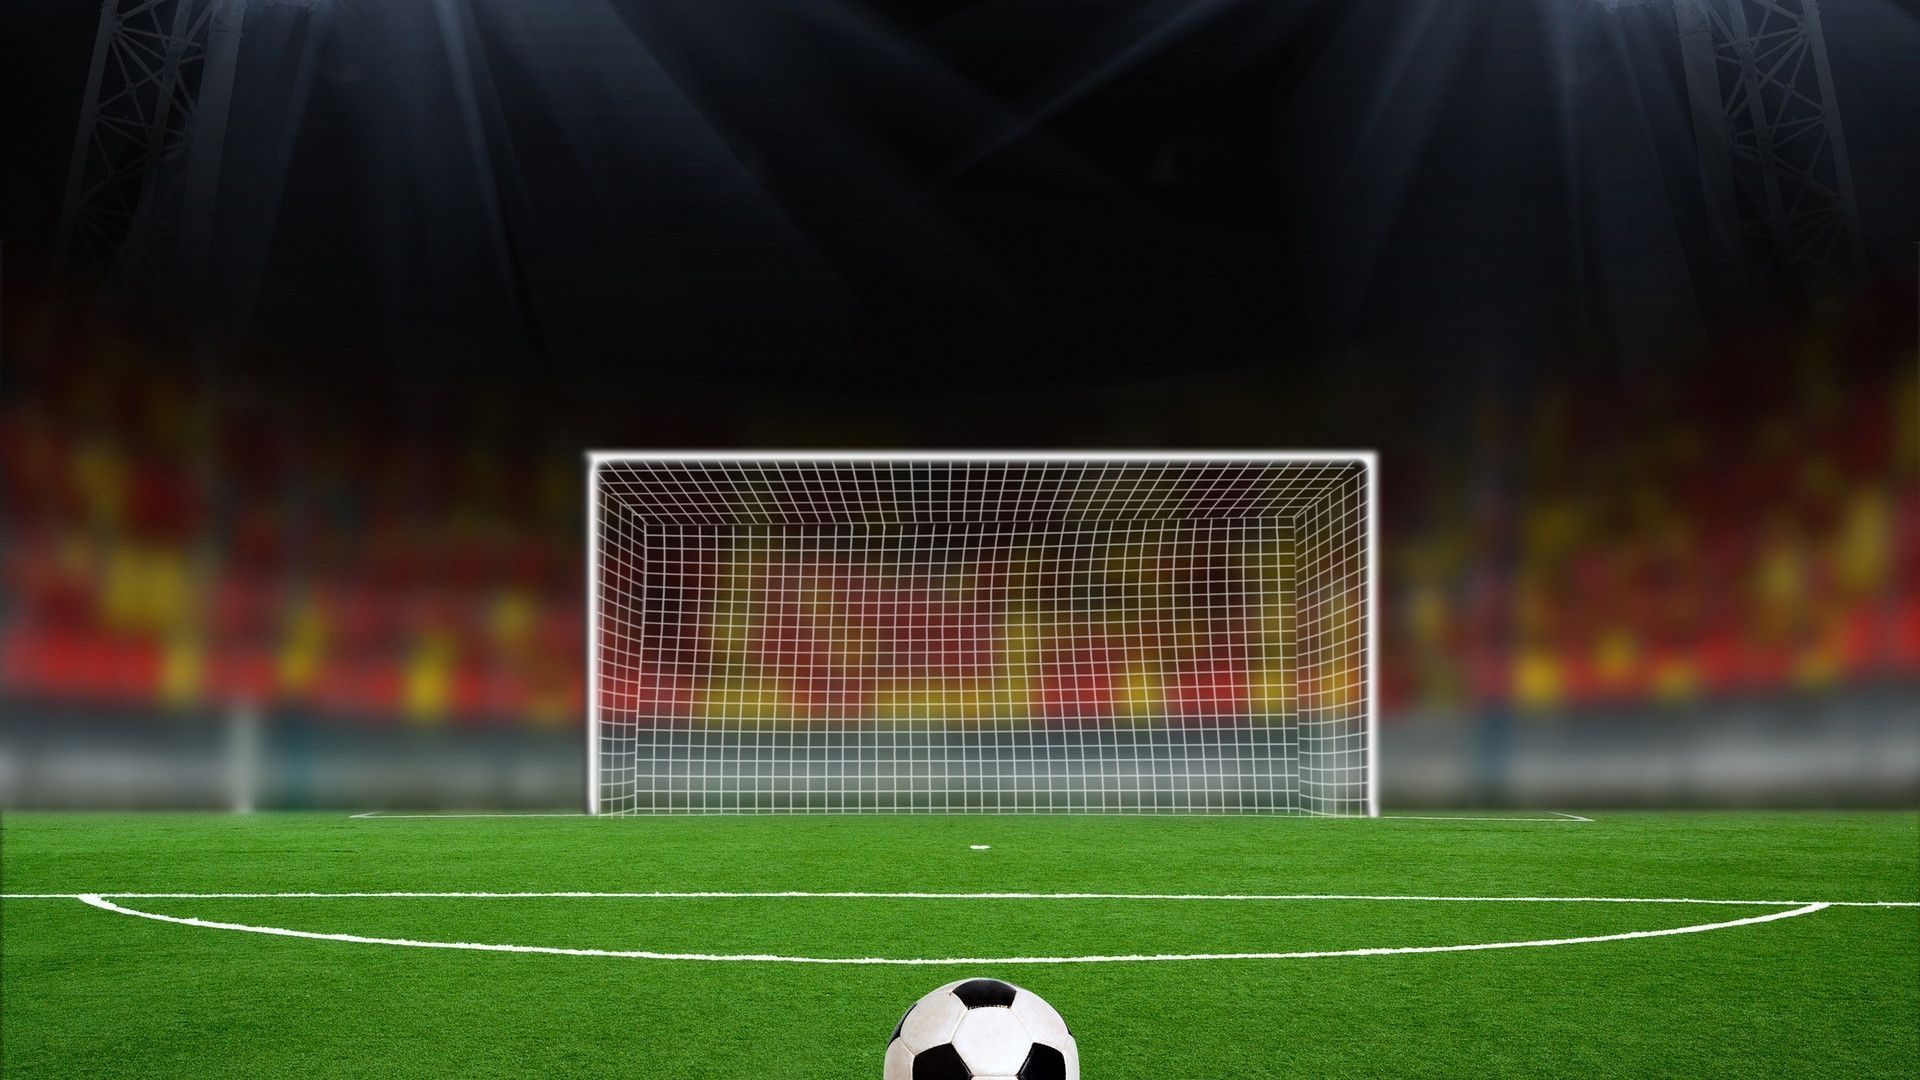 Soccer Goal Wallpaper Phone Crm Football Background Soccer Goal Soccer